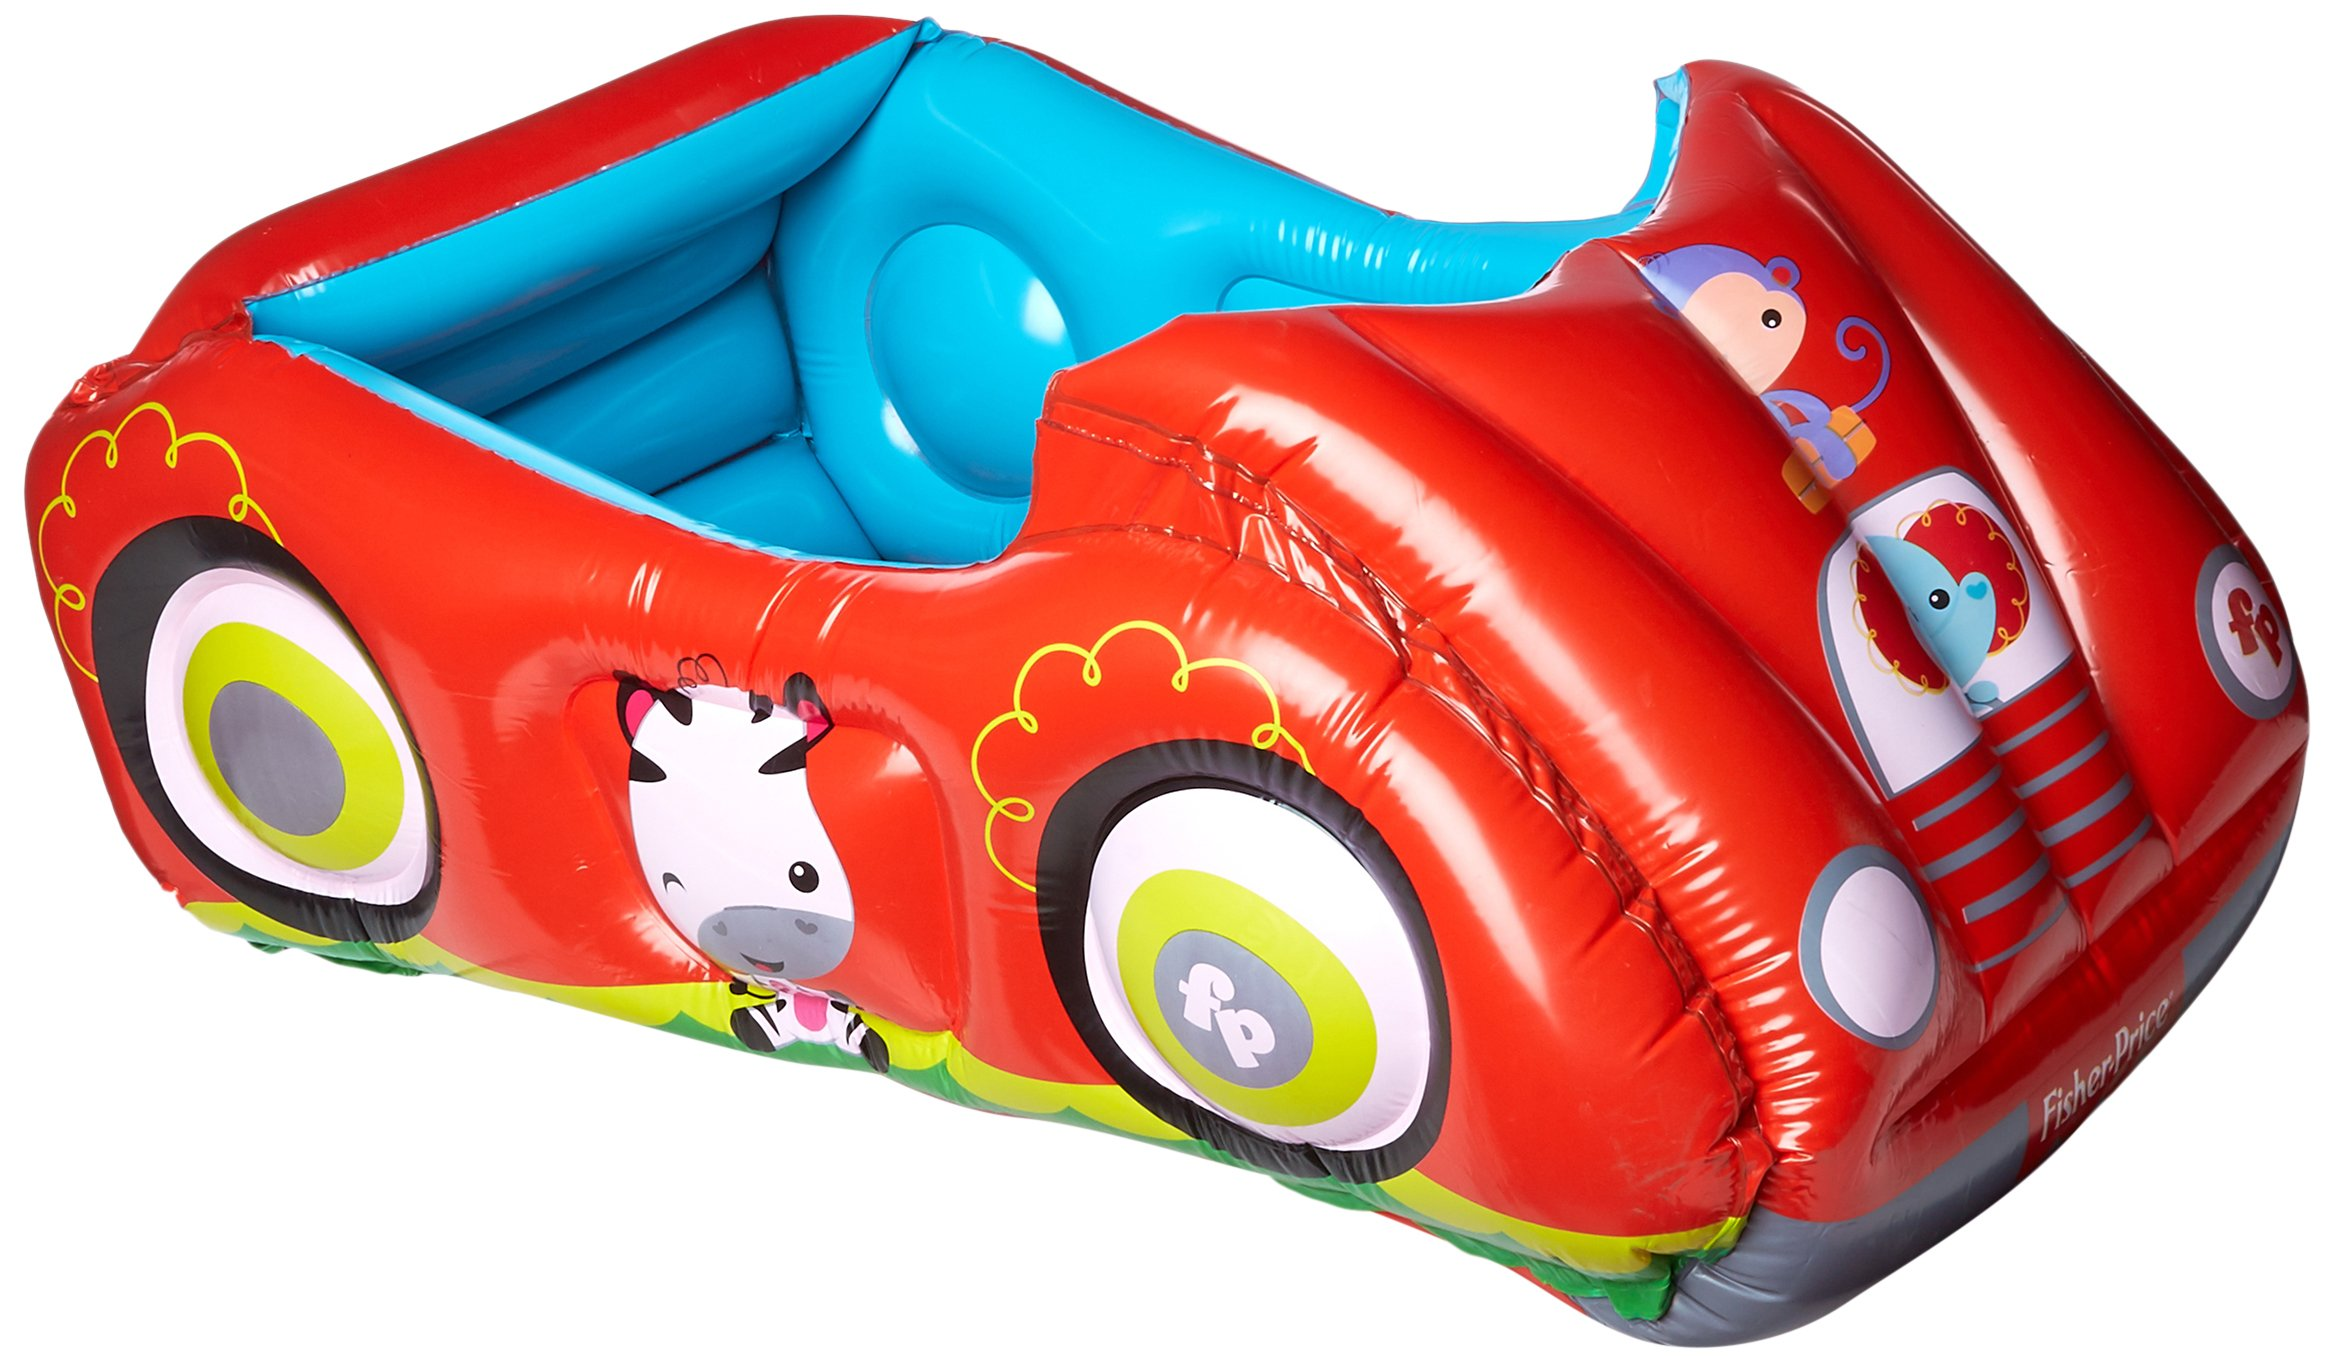 Bestway Fisher-Price Race Car Ball Pit Inflatable, Red, 47 x 31 x 20